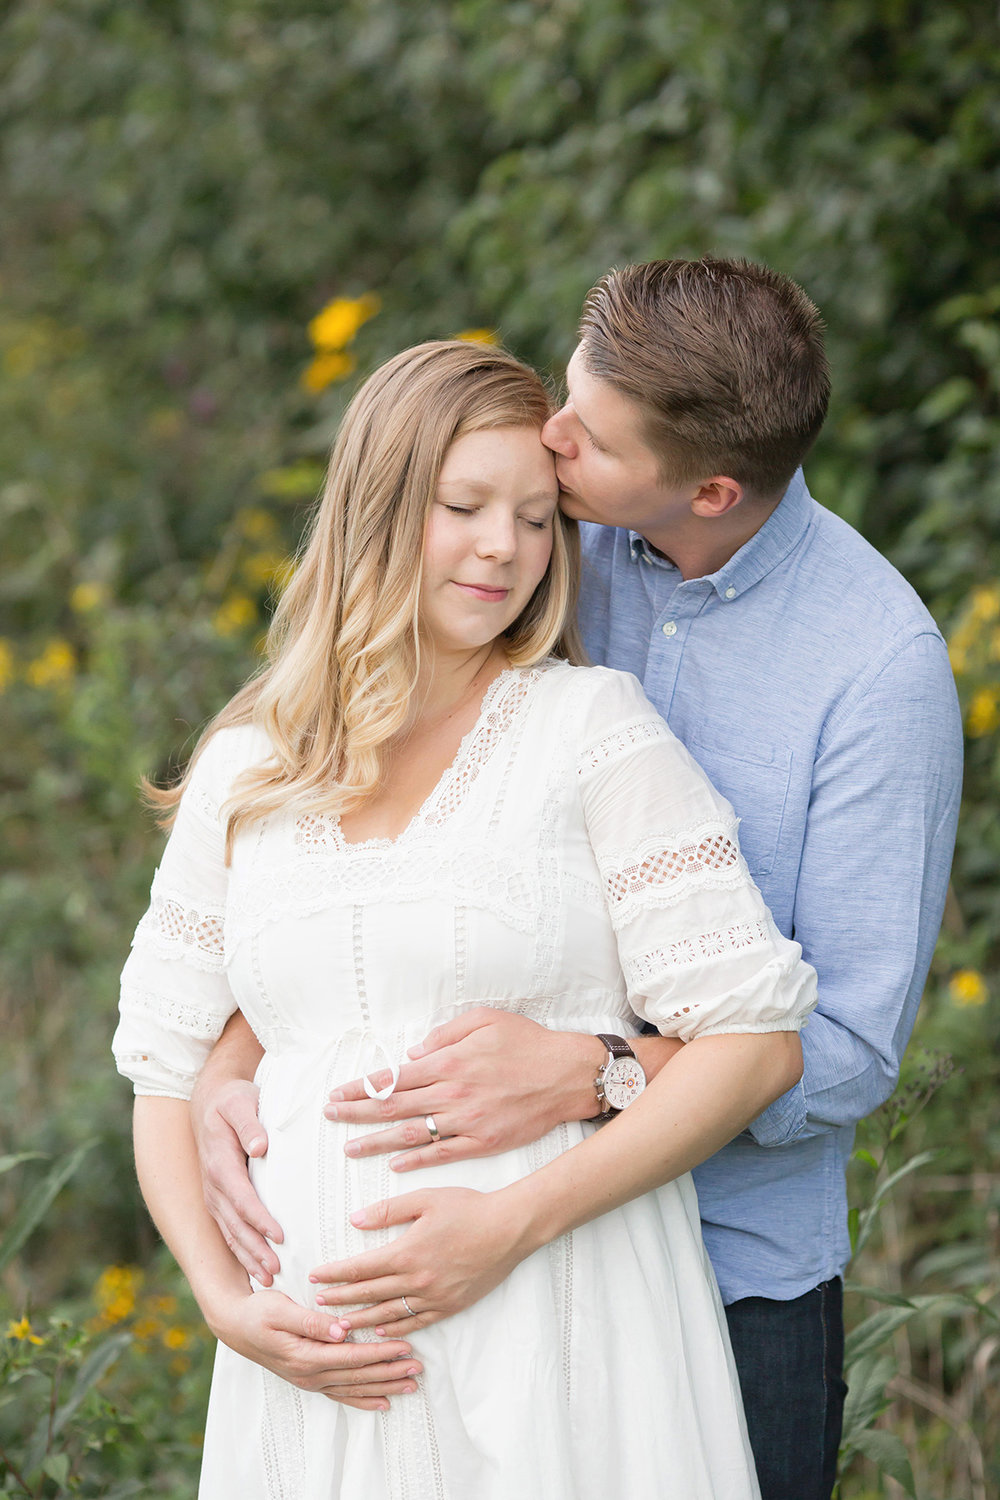 Louisville KY Maternity and Newborn Photographer | Julie Brock Photography | Outdoor Boho Maternity Photo Session | Louisville Family Photographer | Boho Maternity Dress